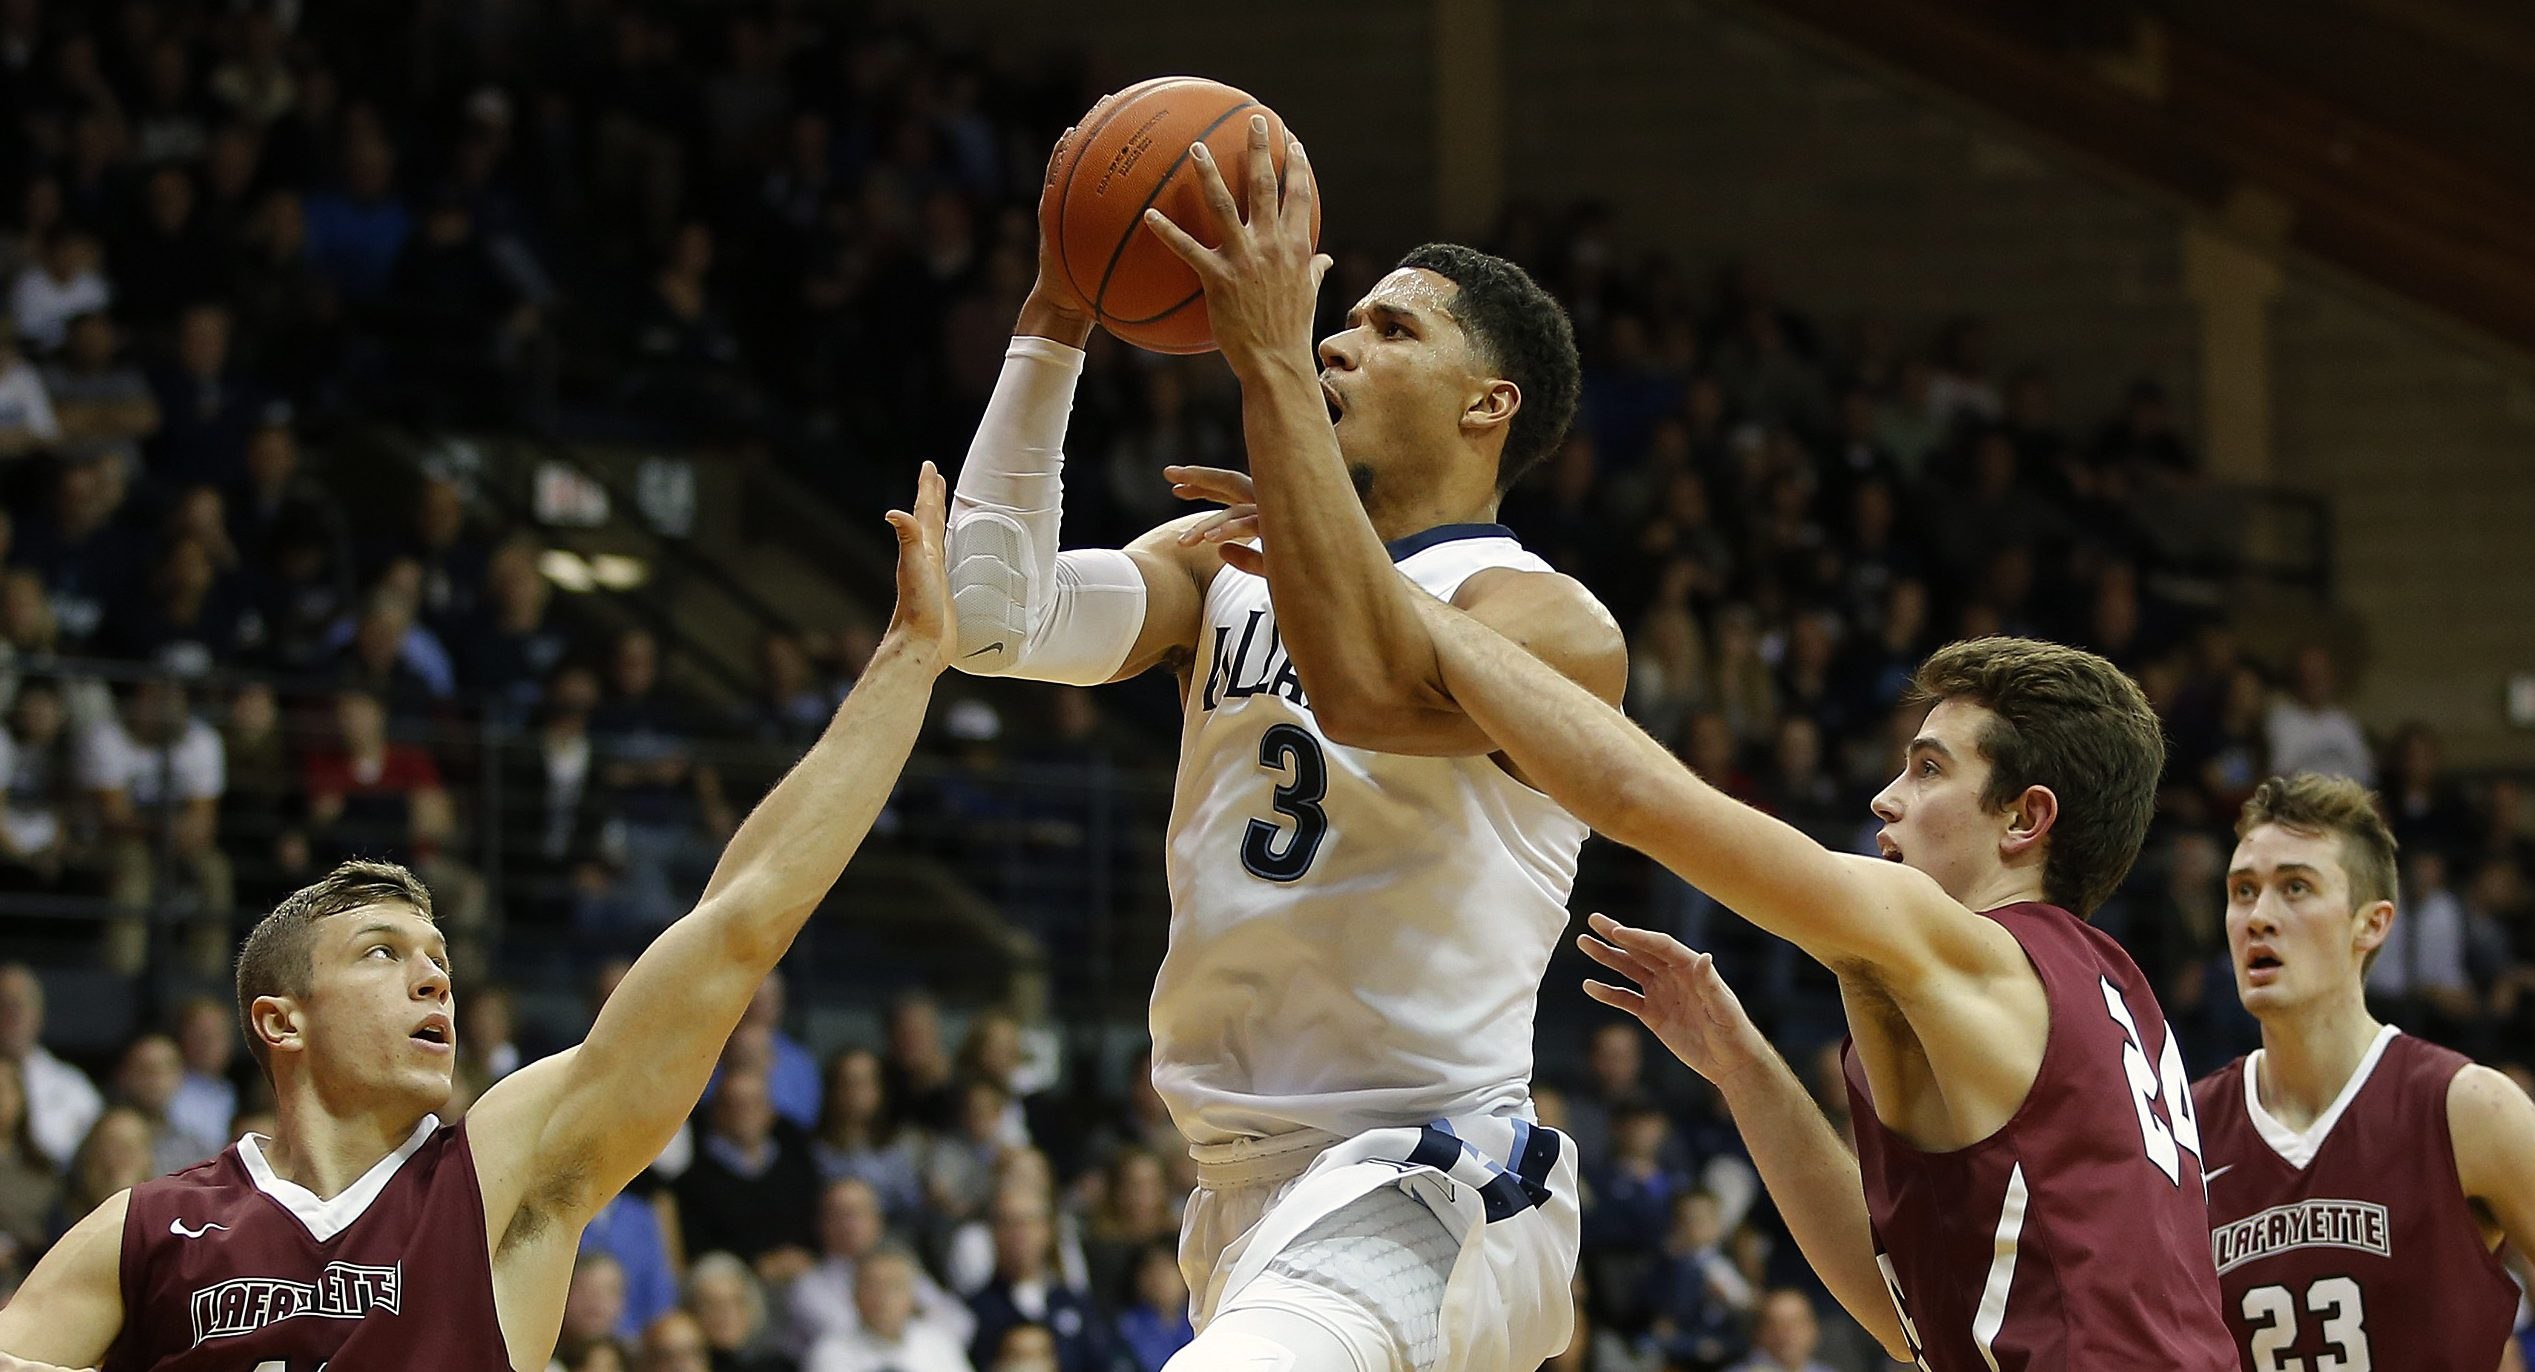 VILLANOVA, PA - NOVEMBER 11: Josh Hart #3 of Villanova attempts a shot as Nick Lindner #11 and Kyle Stout #24 of Lafayette defend during the second half of a game at The Pavilion on November 11, 2016 in Villanova, Pennsylvania. Villanova defeated Lafayette 88-48. (Photo by Rich Schultz/Getty Images)